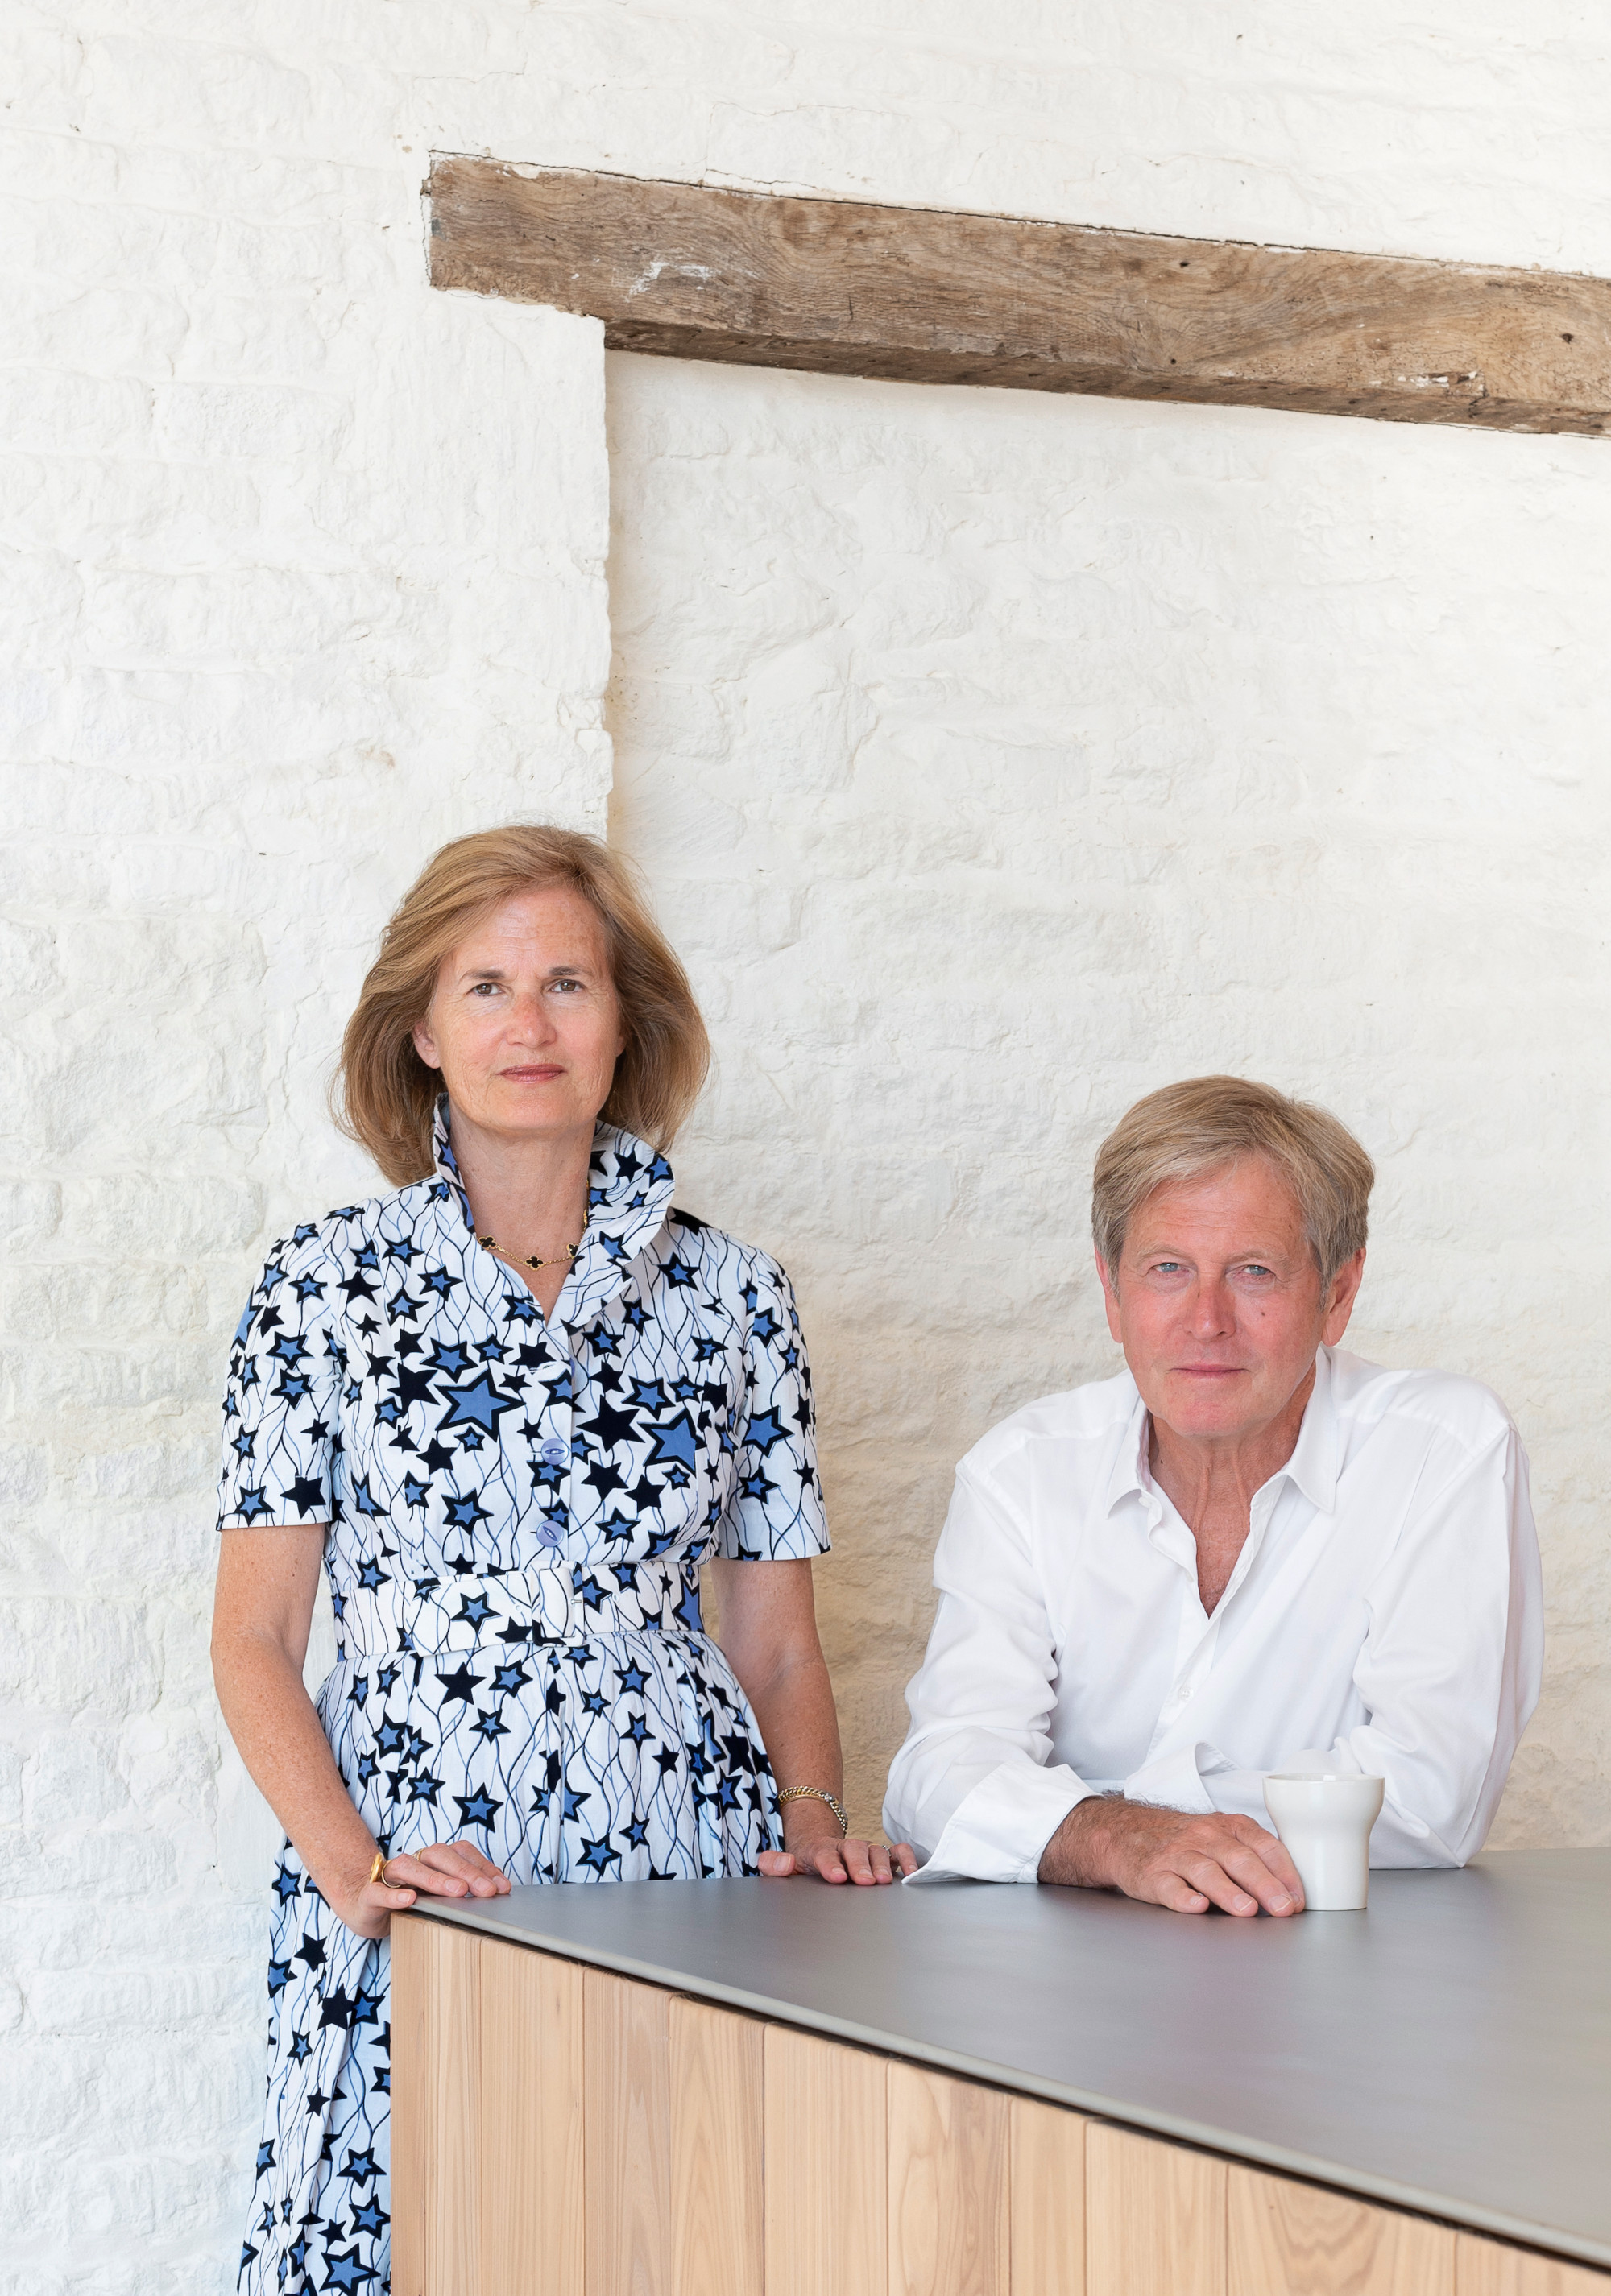 Catherine and John Pawson. All photographs by Gilbert McCarragher